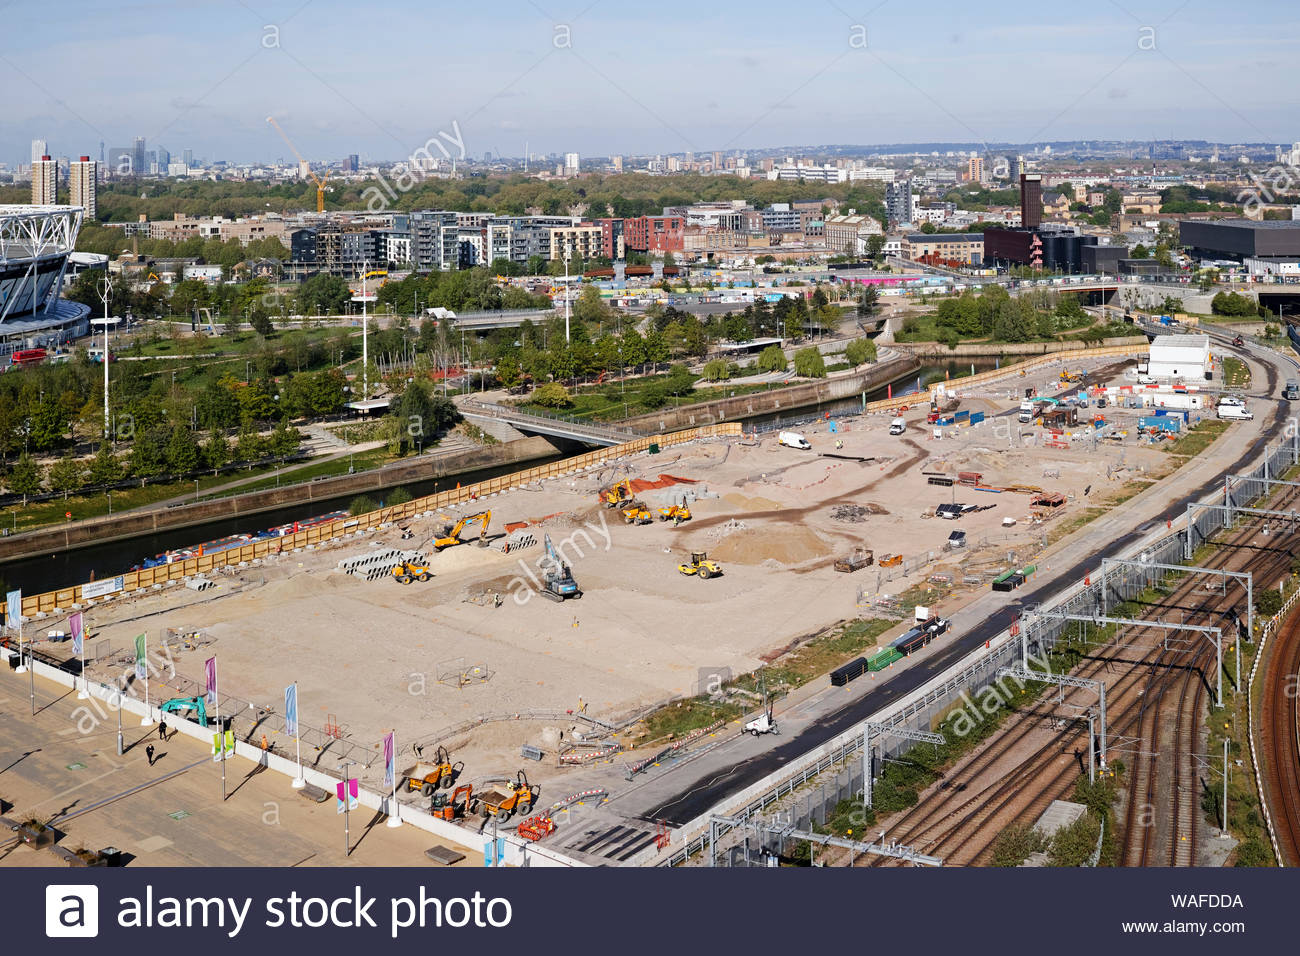 Construction work on the East Bank cultural and education quarter within the Olympic Park: Stratford, London. Stock Photo